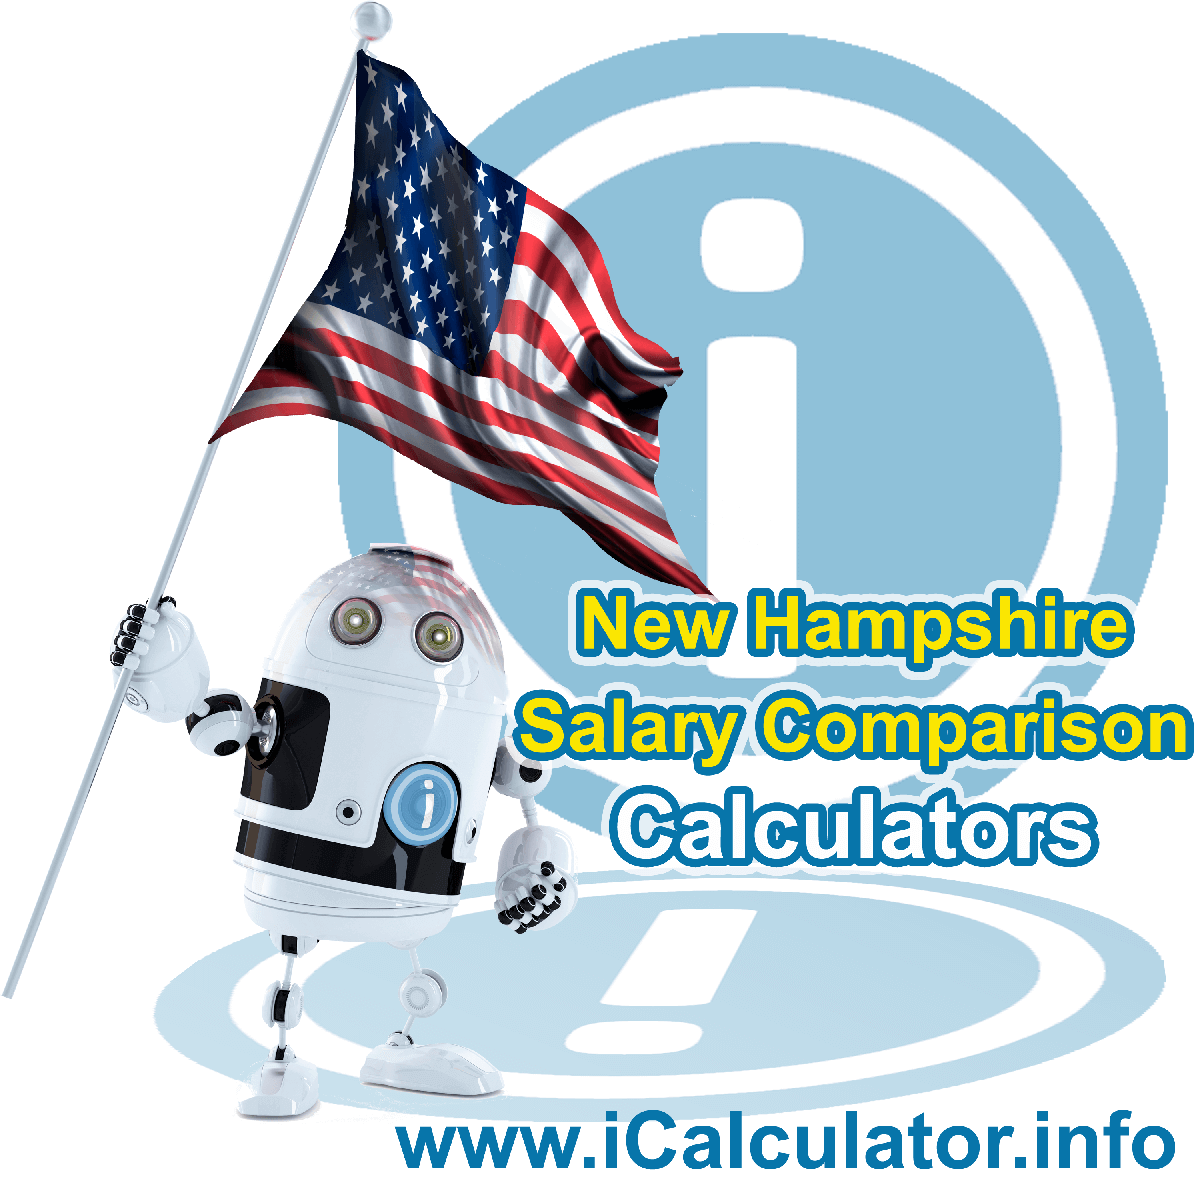 New Hampshire Salary Comparison Calculator 2021 | iCalculator™ | The New Hampshire Salary Comparison Calculator allows you to quickly calculate and compare upto 6 salaries in New Hampshire or between other states for the 2021 tax year and historical tax years. Its an excellent tool for jobseekers, pay raise comparison and comparison of salaries between different US States